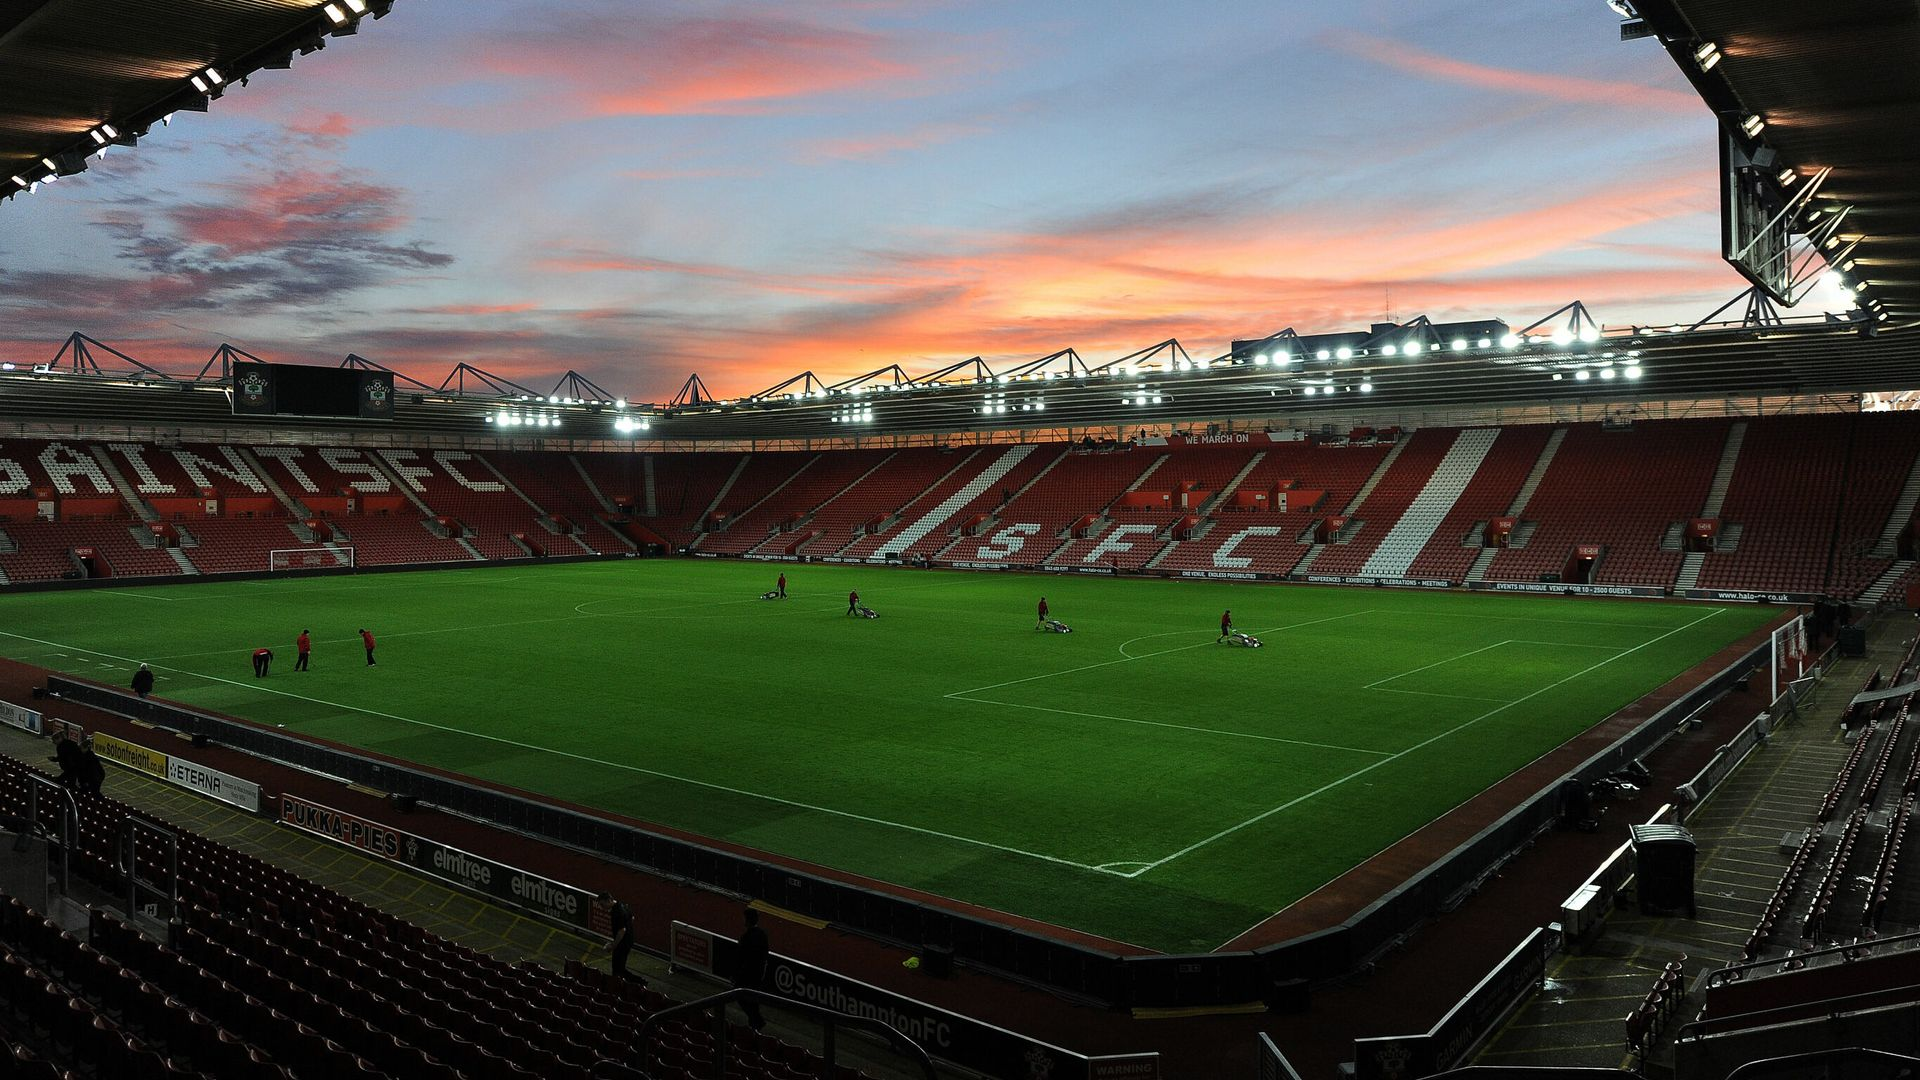 Leeds vs Southampton moved for FA Cup tie